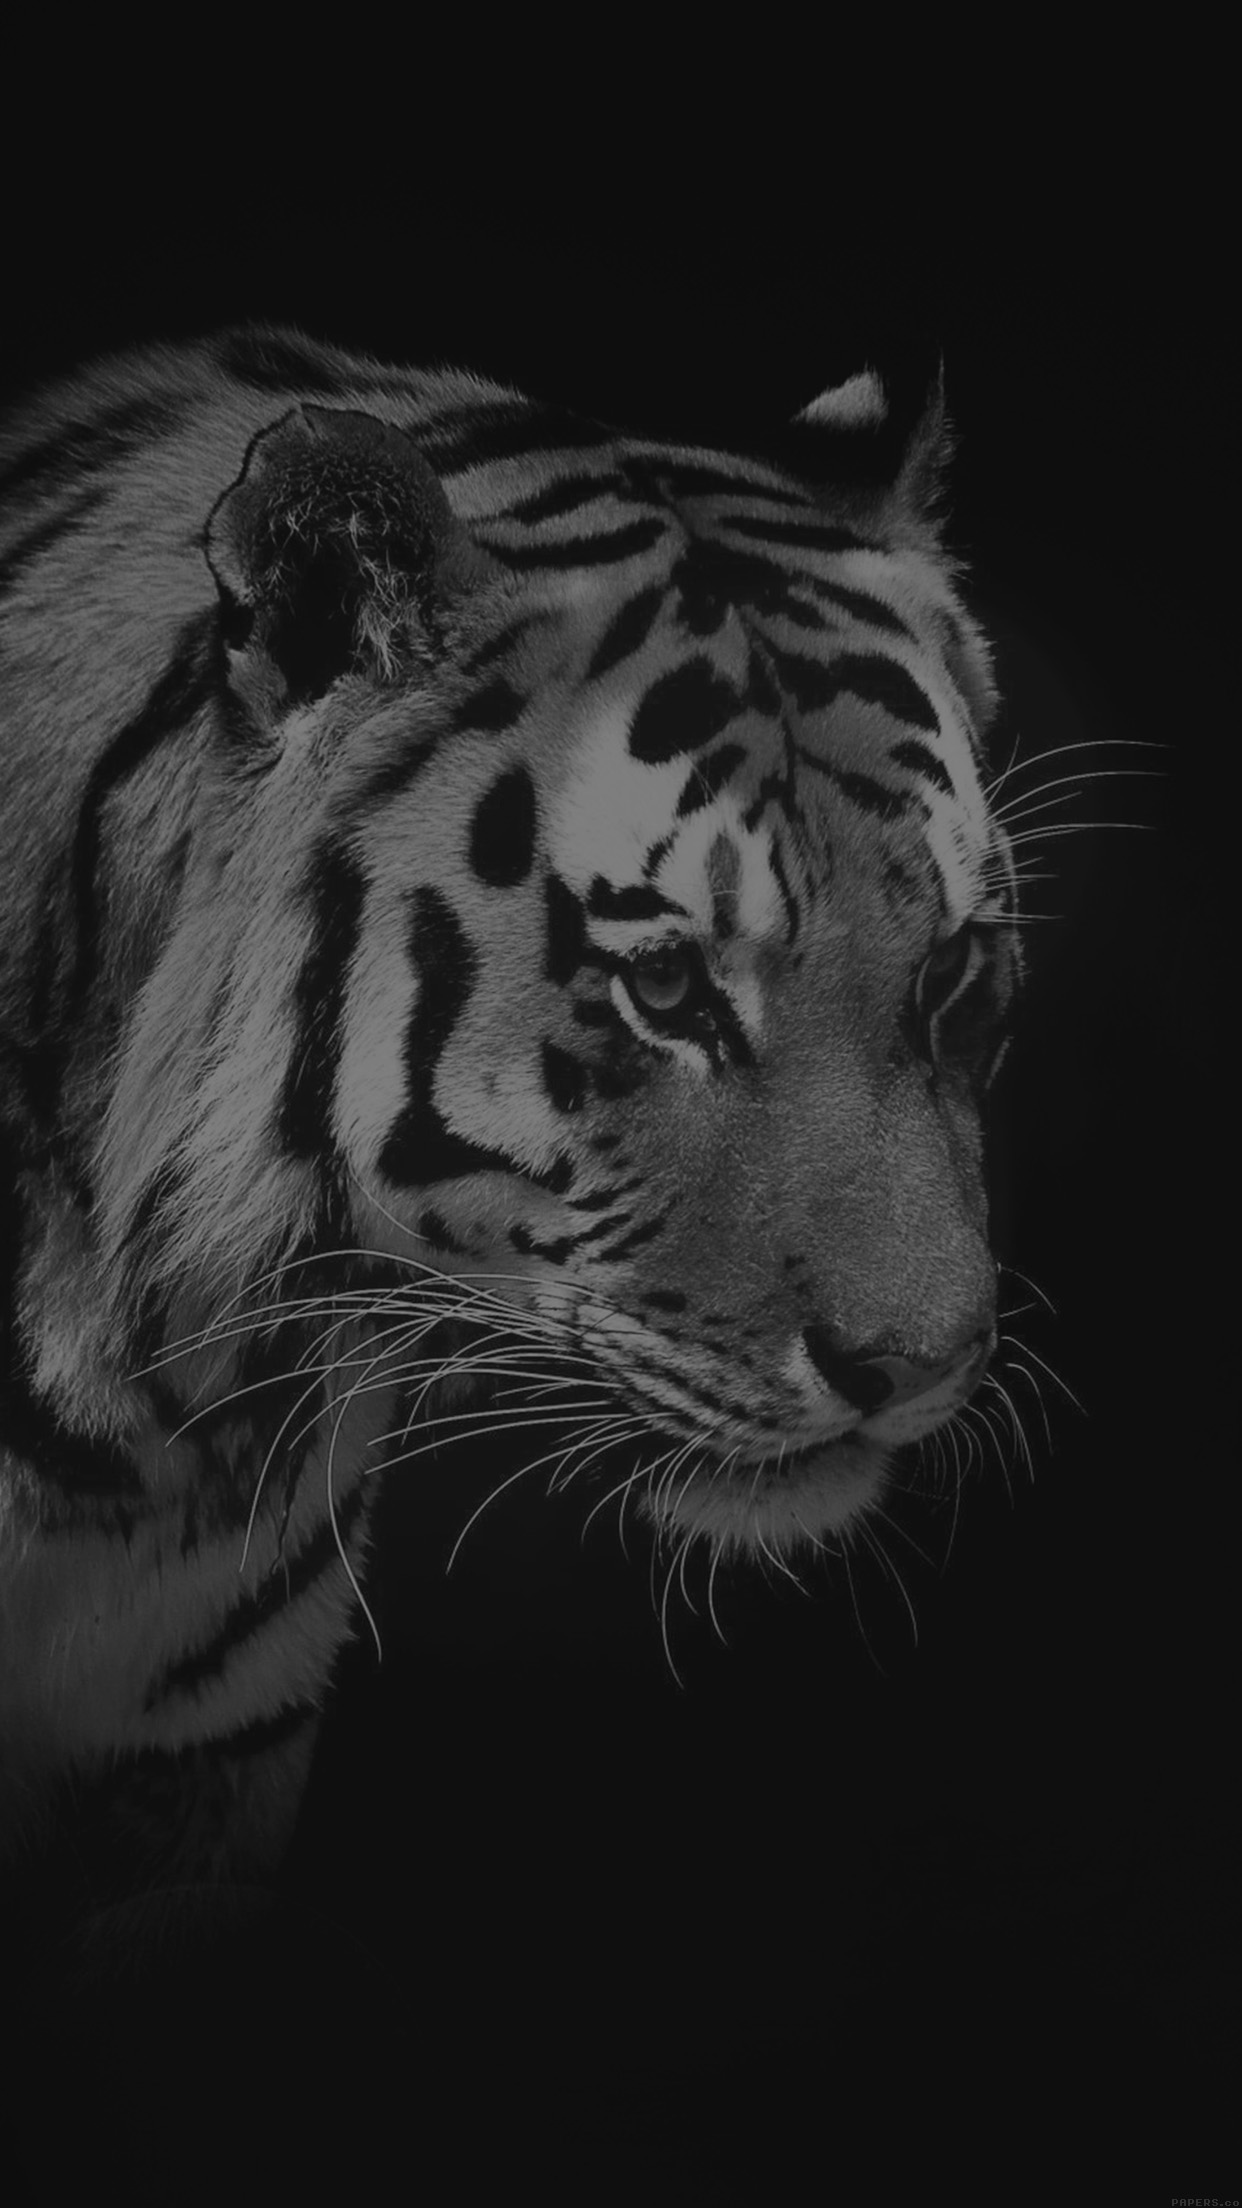 Tiger Dark Bw Animal Love Nature Android Wallpaper Android Hd